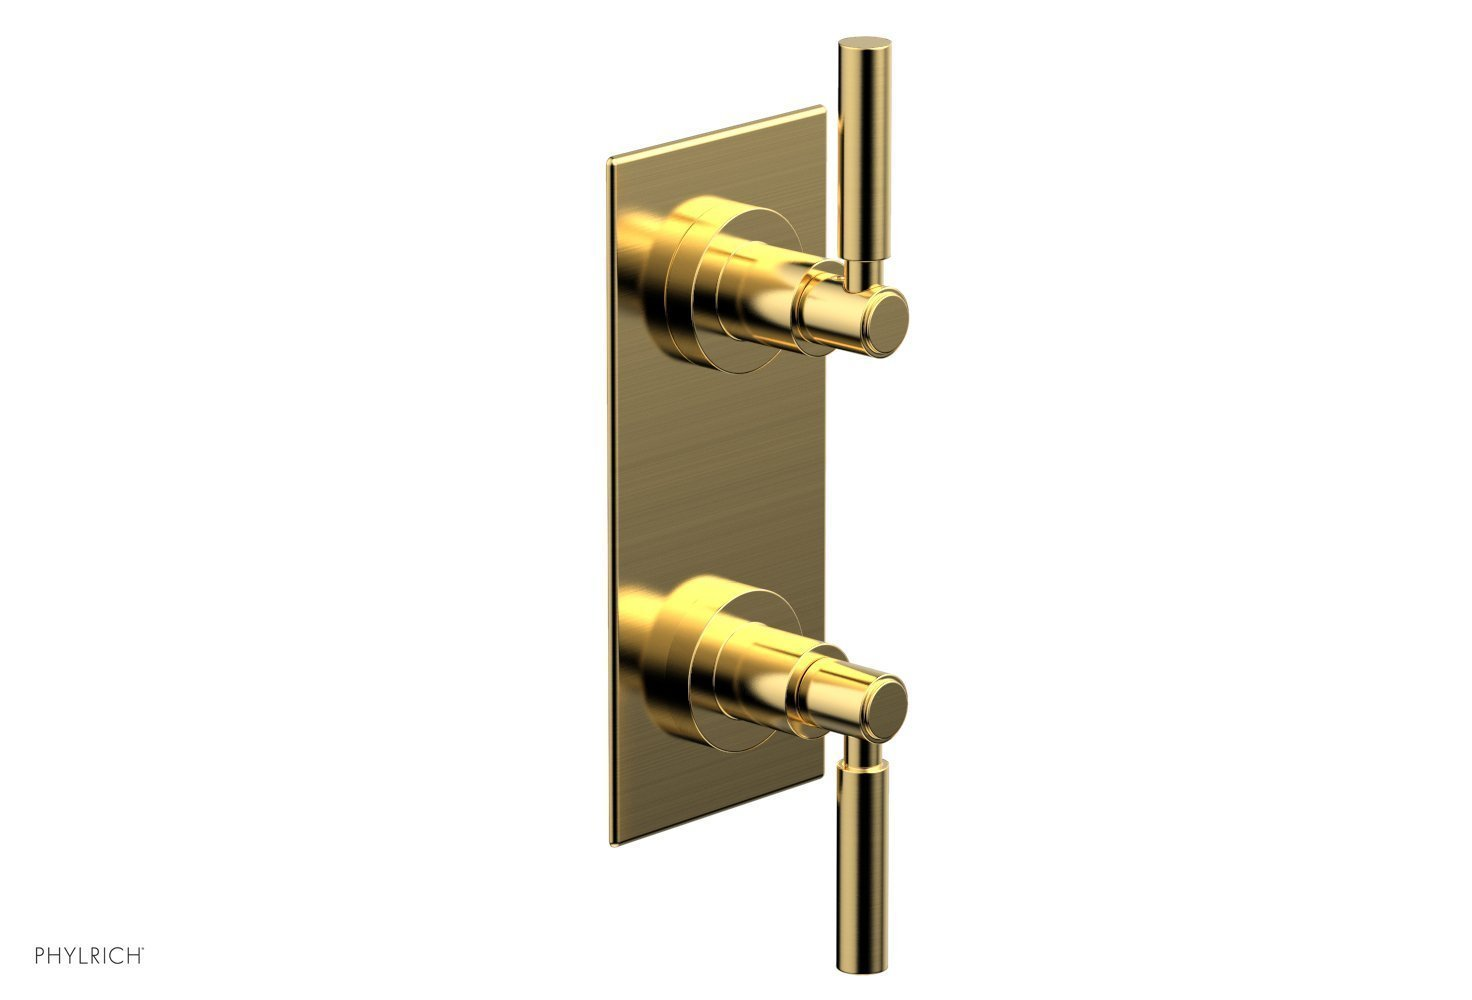 """BASIC 1/2"""" Thermostatic Valve with Volume Control or Diverter Lever Handles 4-344 - Satin Gold"""